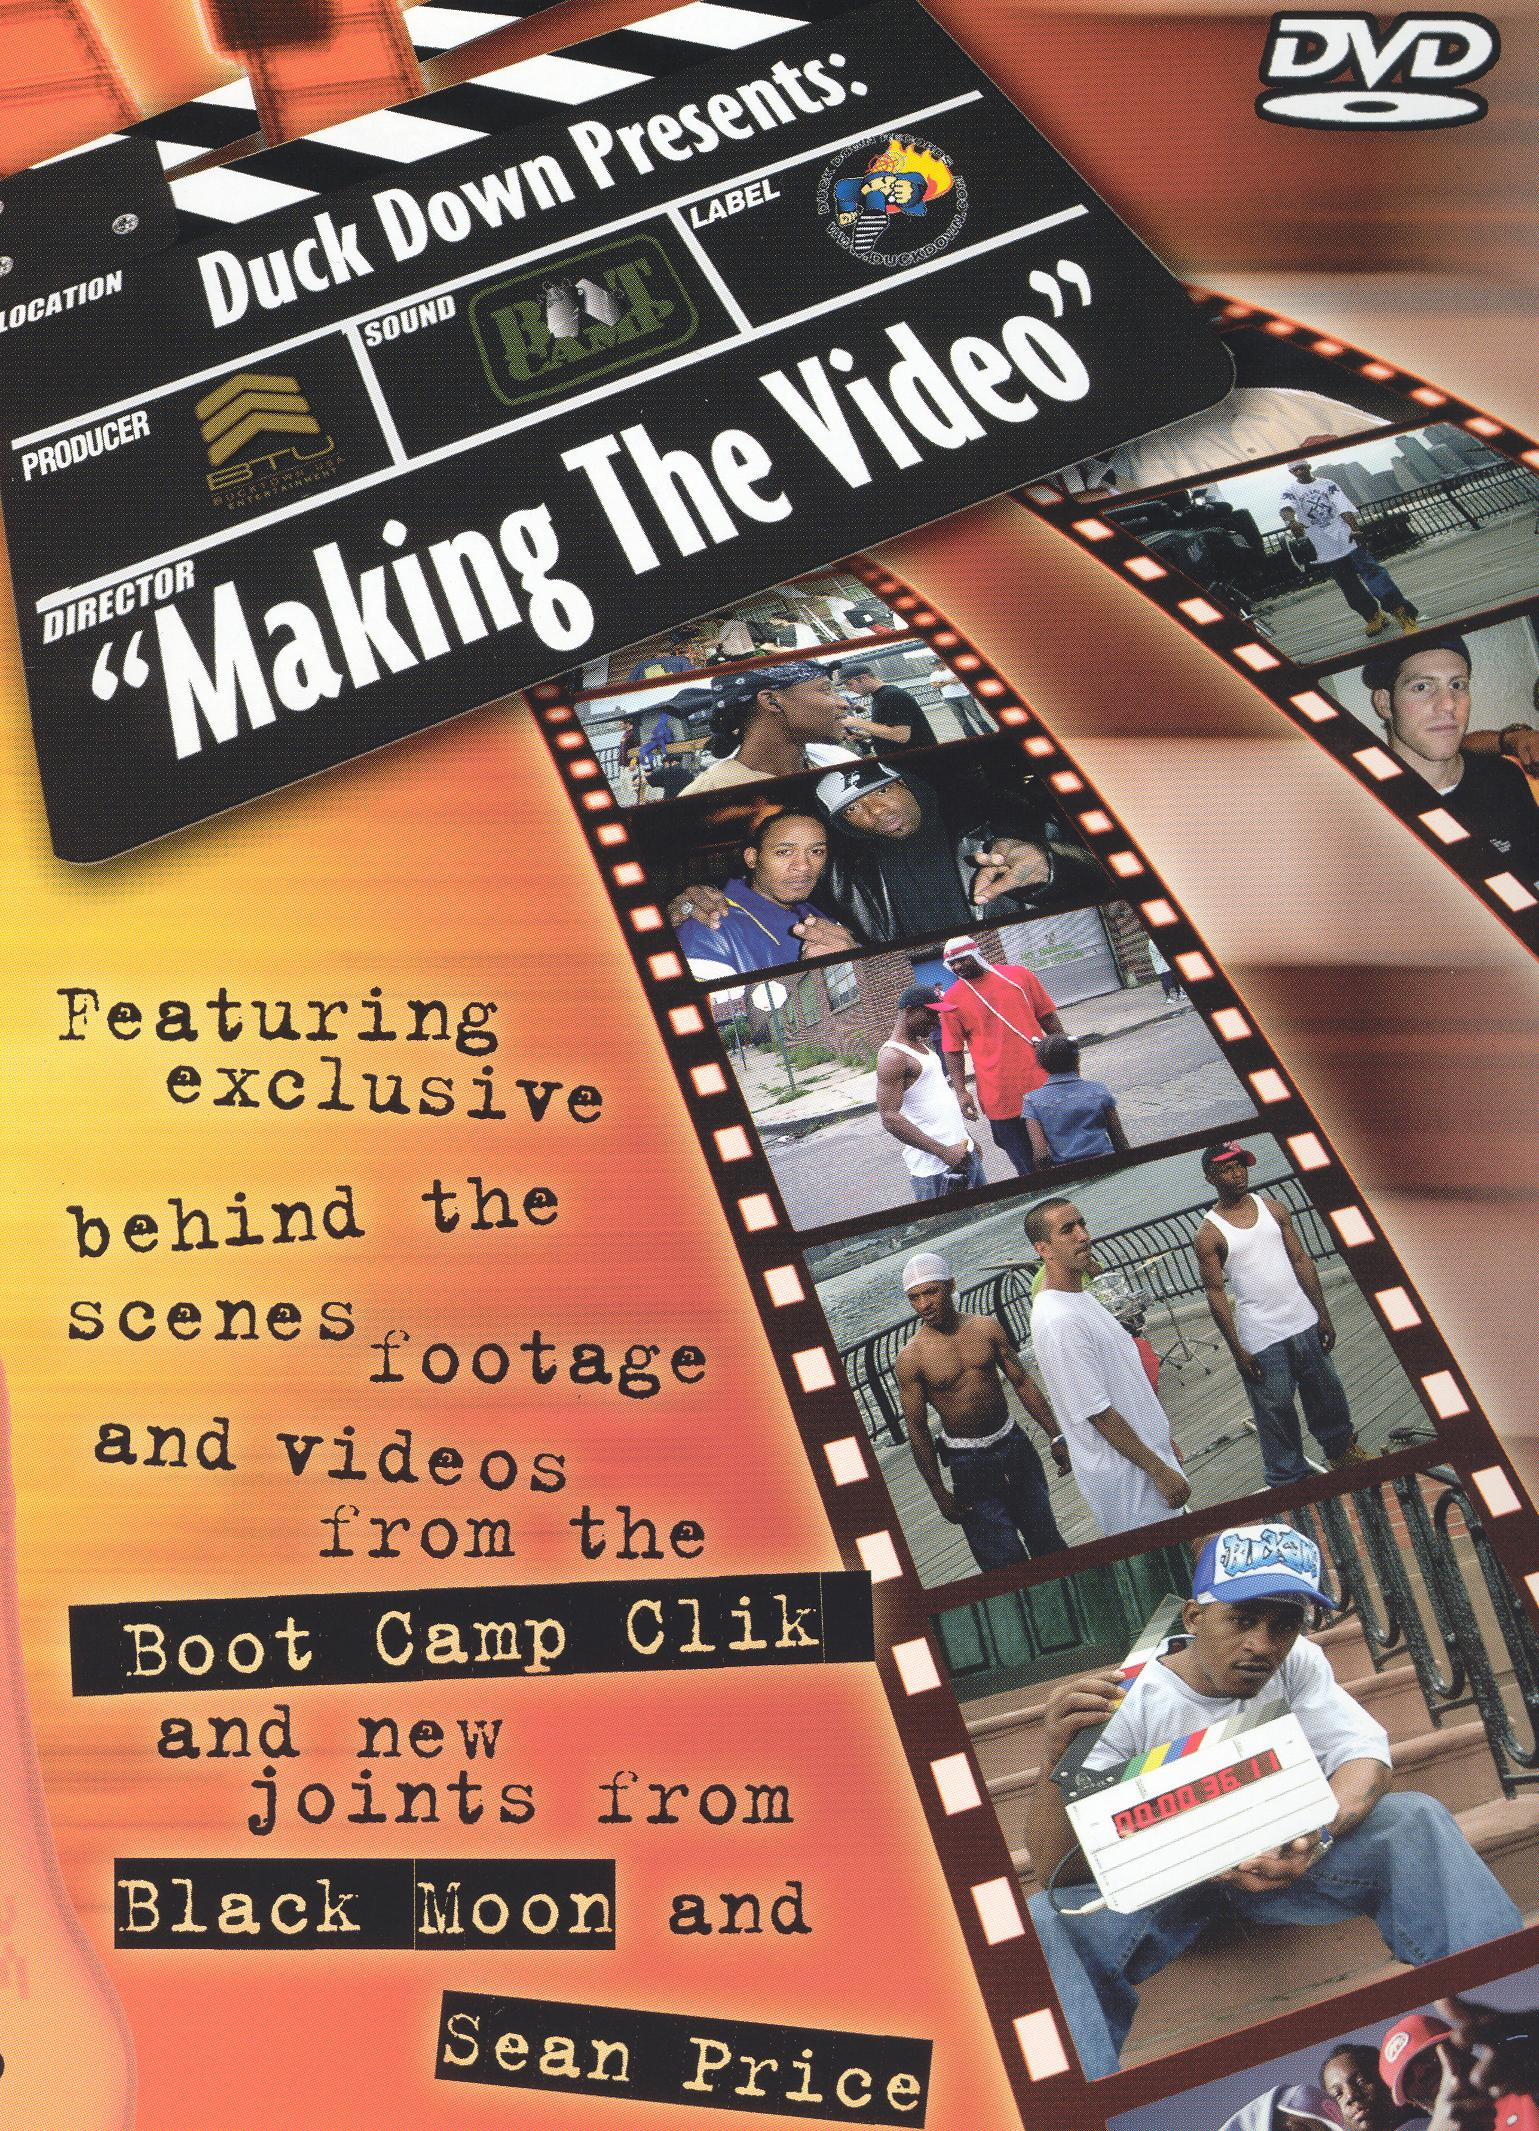 Duck Down Presents: Making The Video